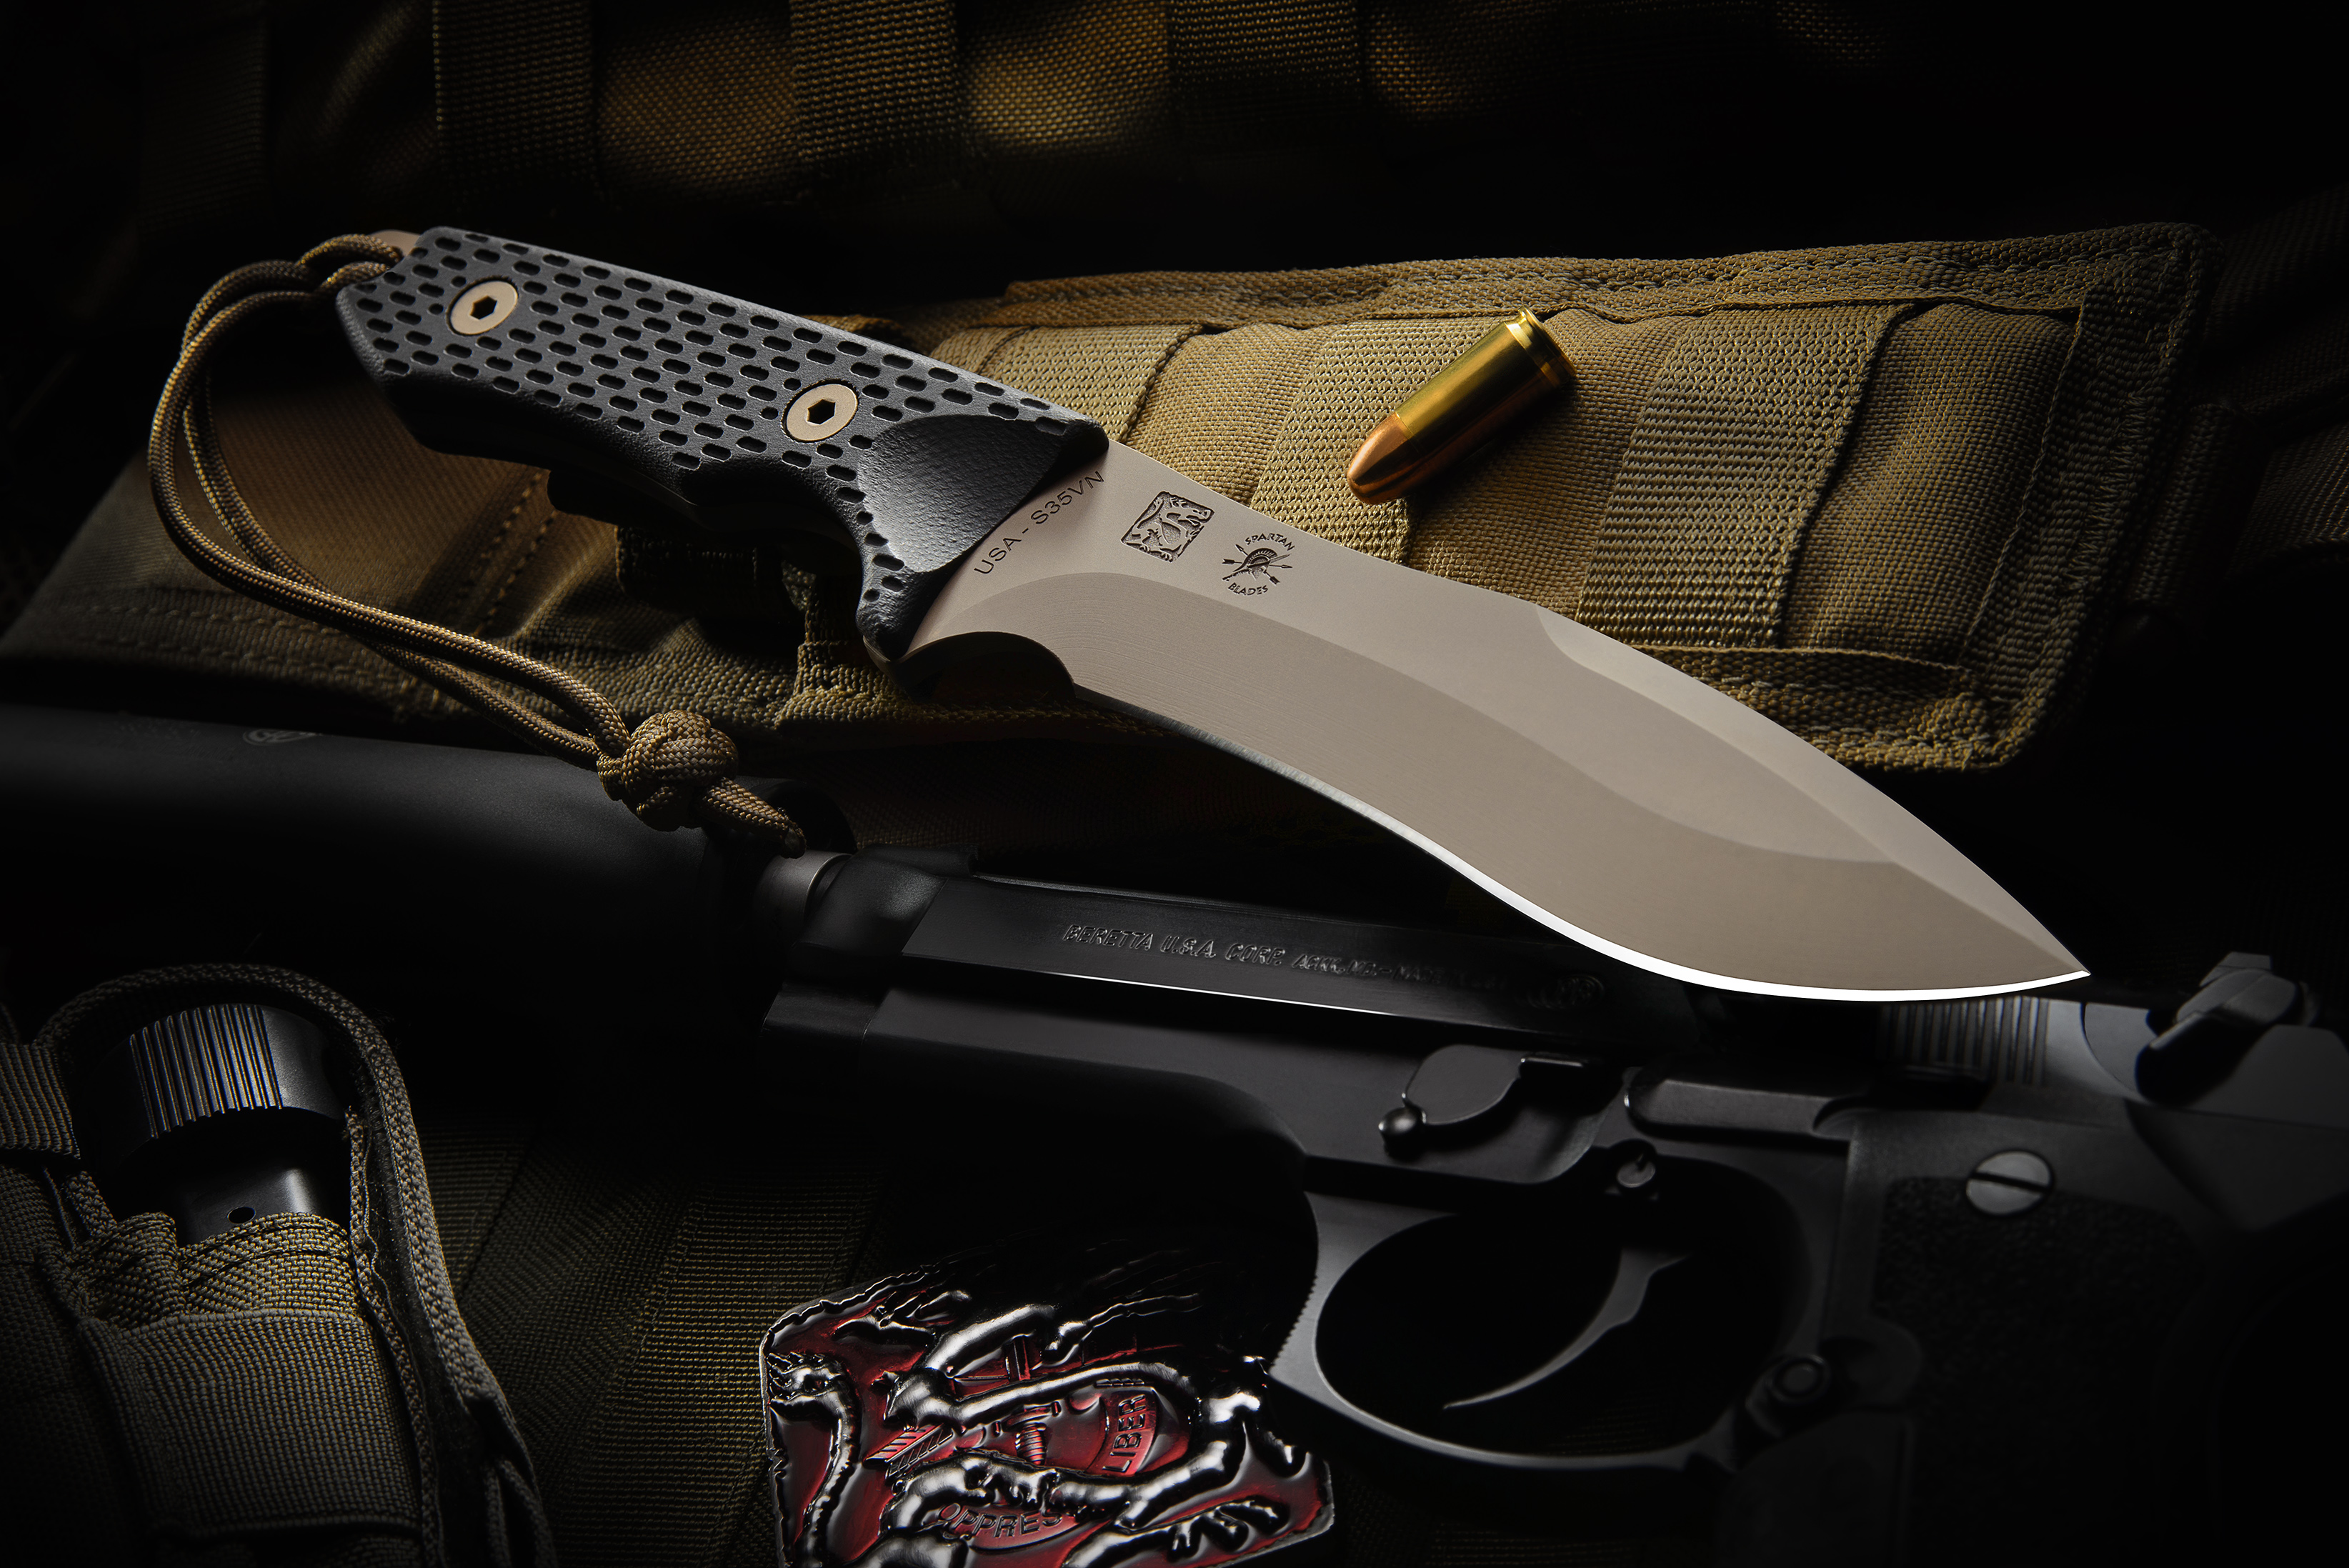 eagle tactical systems - Home